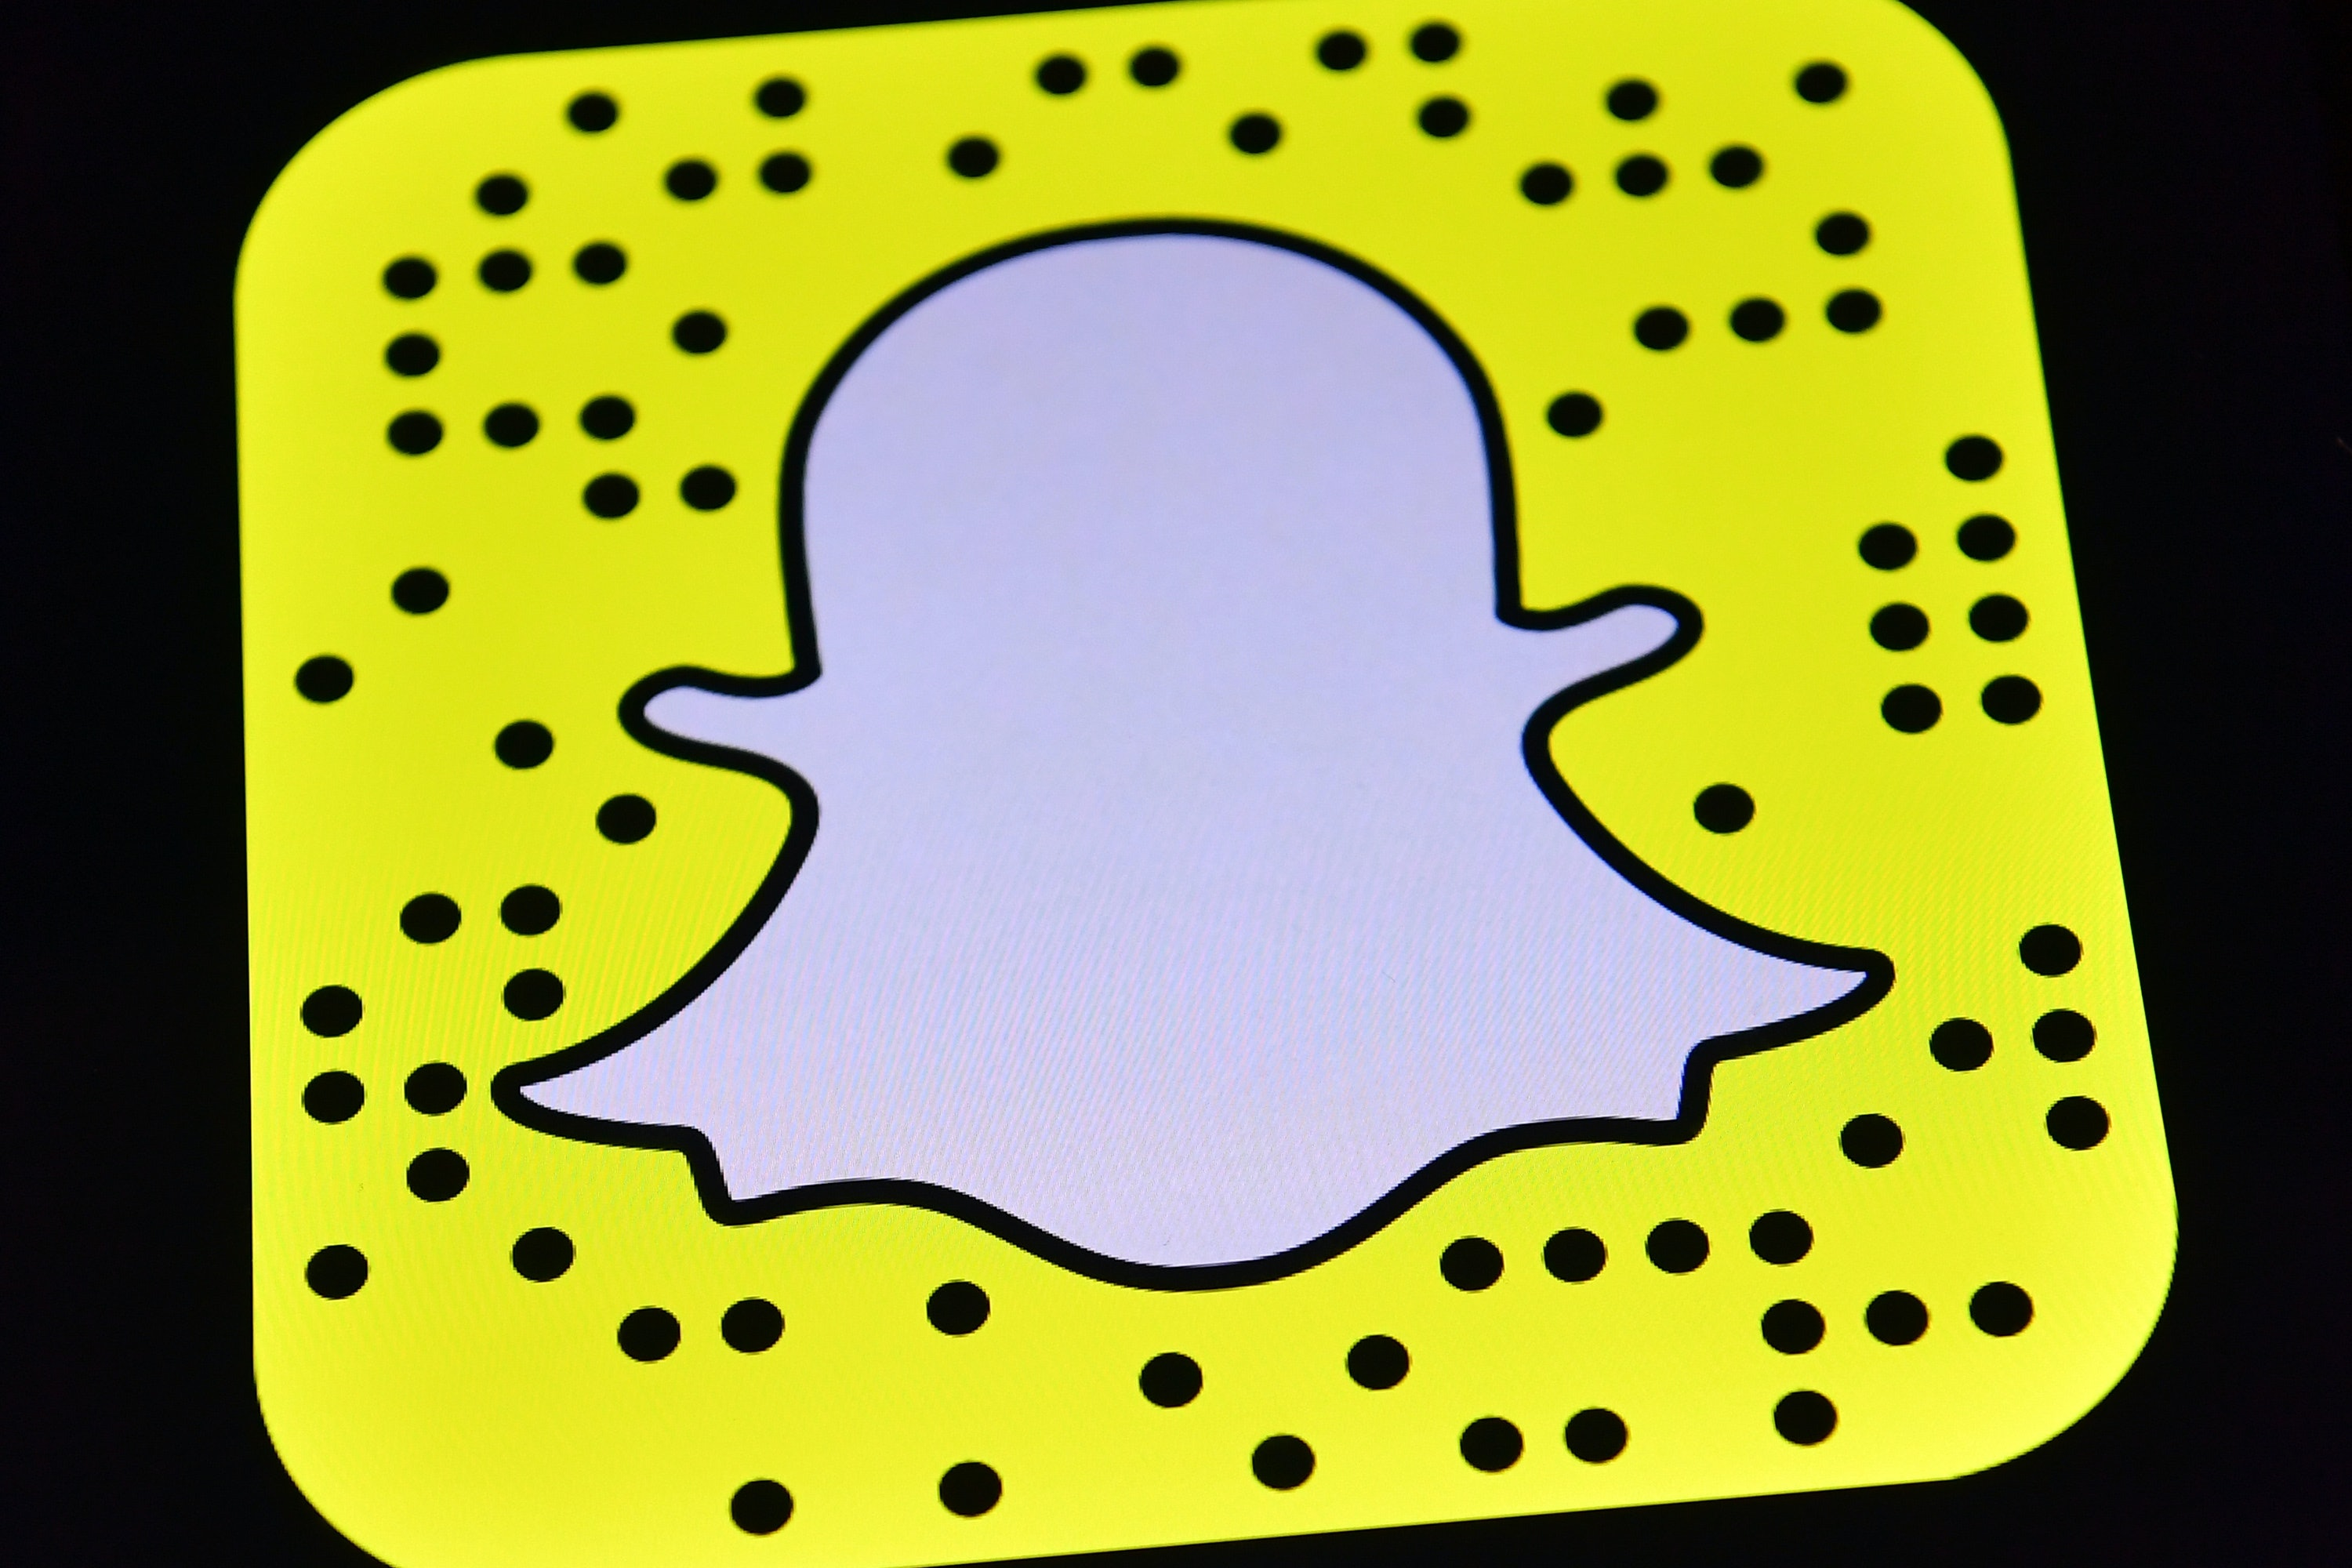 Here S How To Delete Sent Snapchat Messages If You Re Second Guessing Yourself